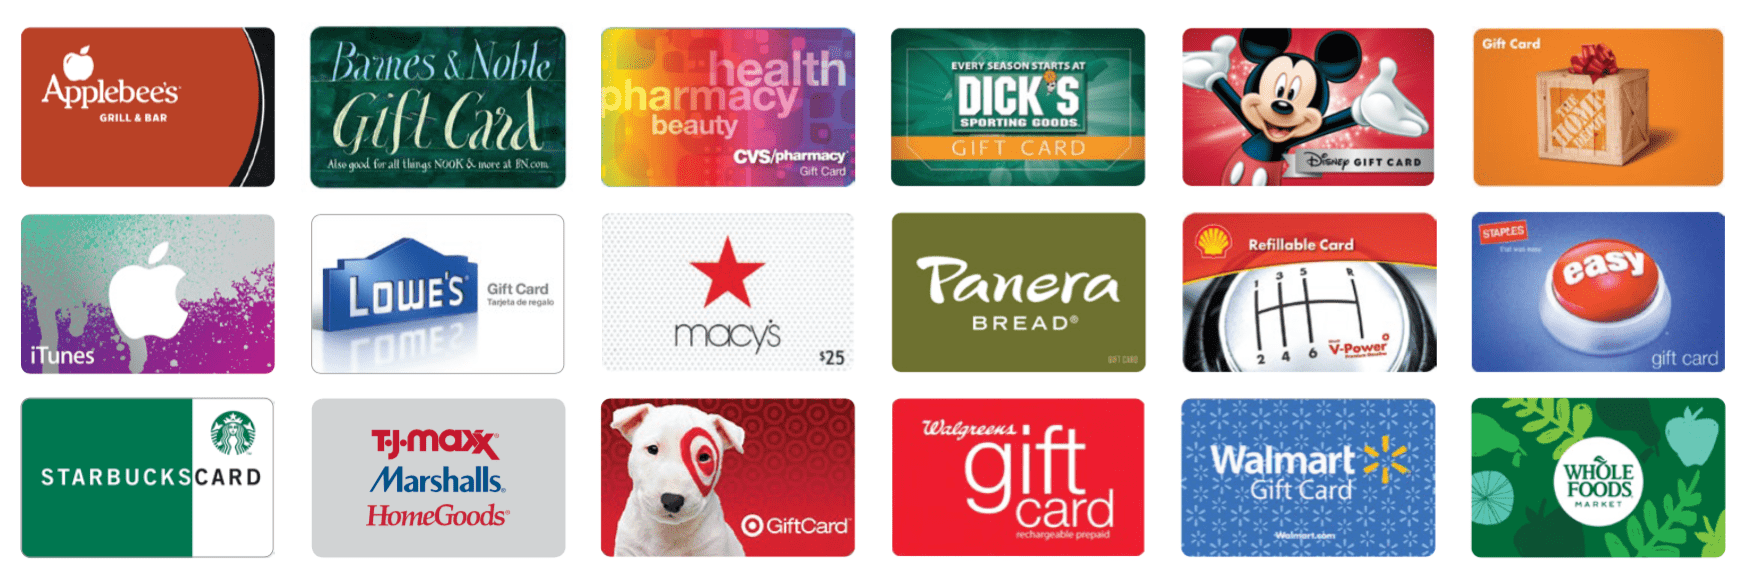 shop with scrip cards